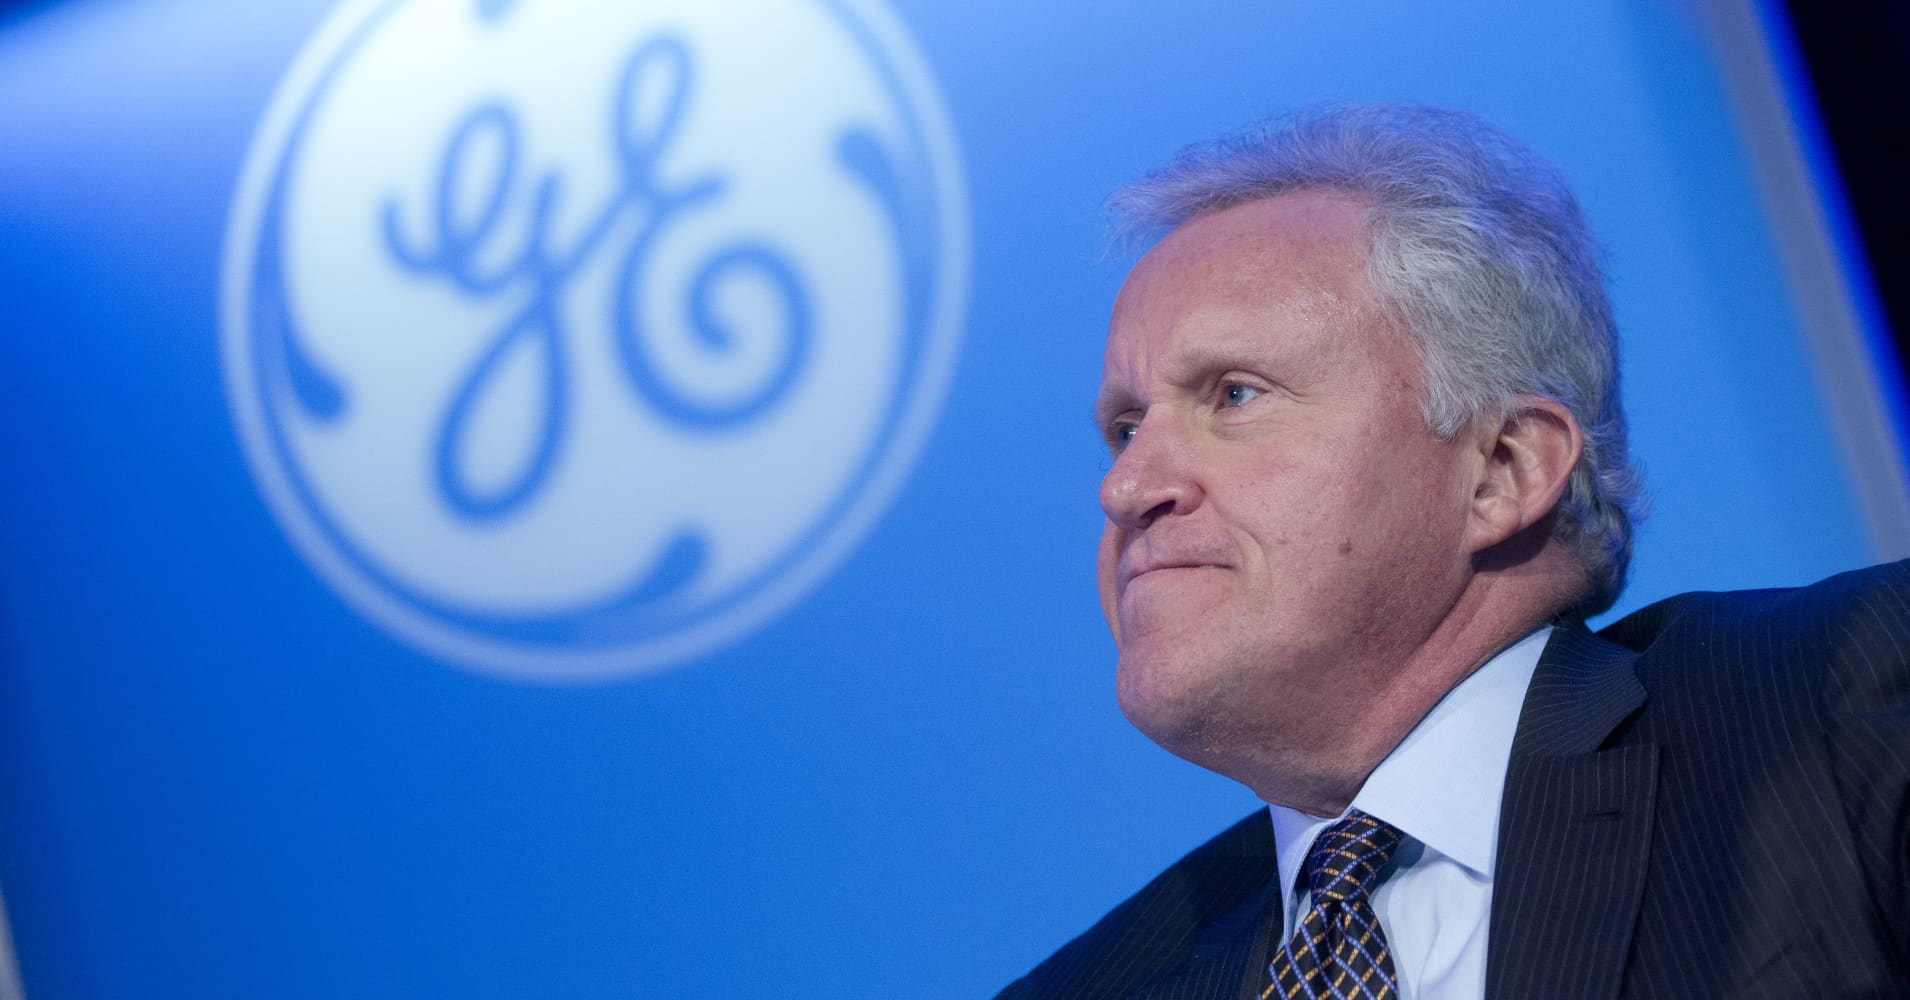 in what ways has jeff immelt redirected the strategy of ge